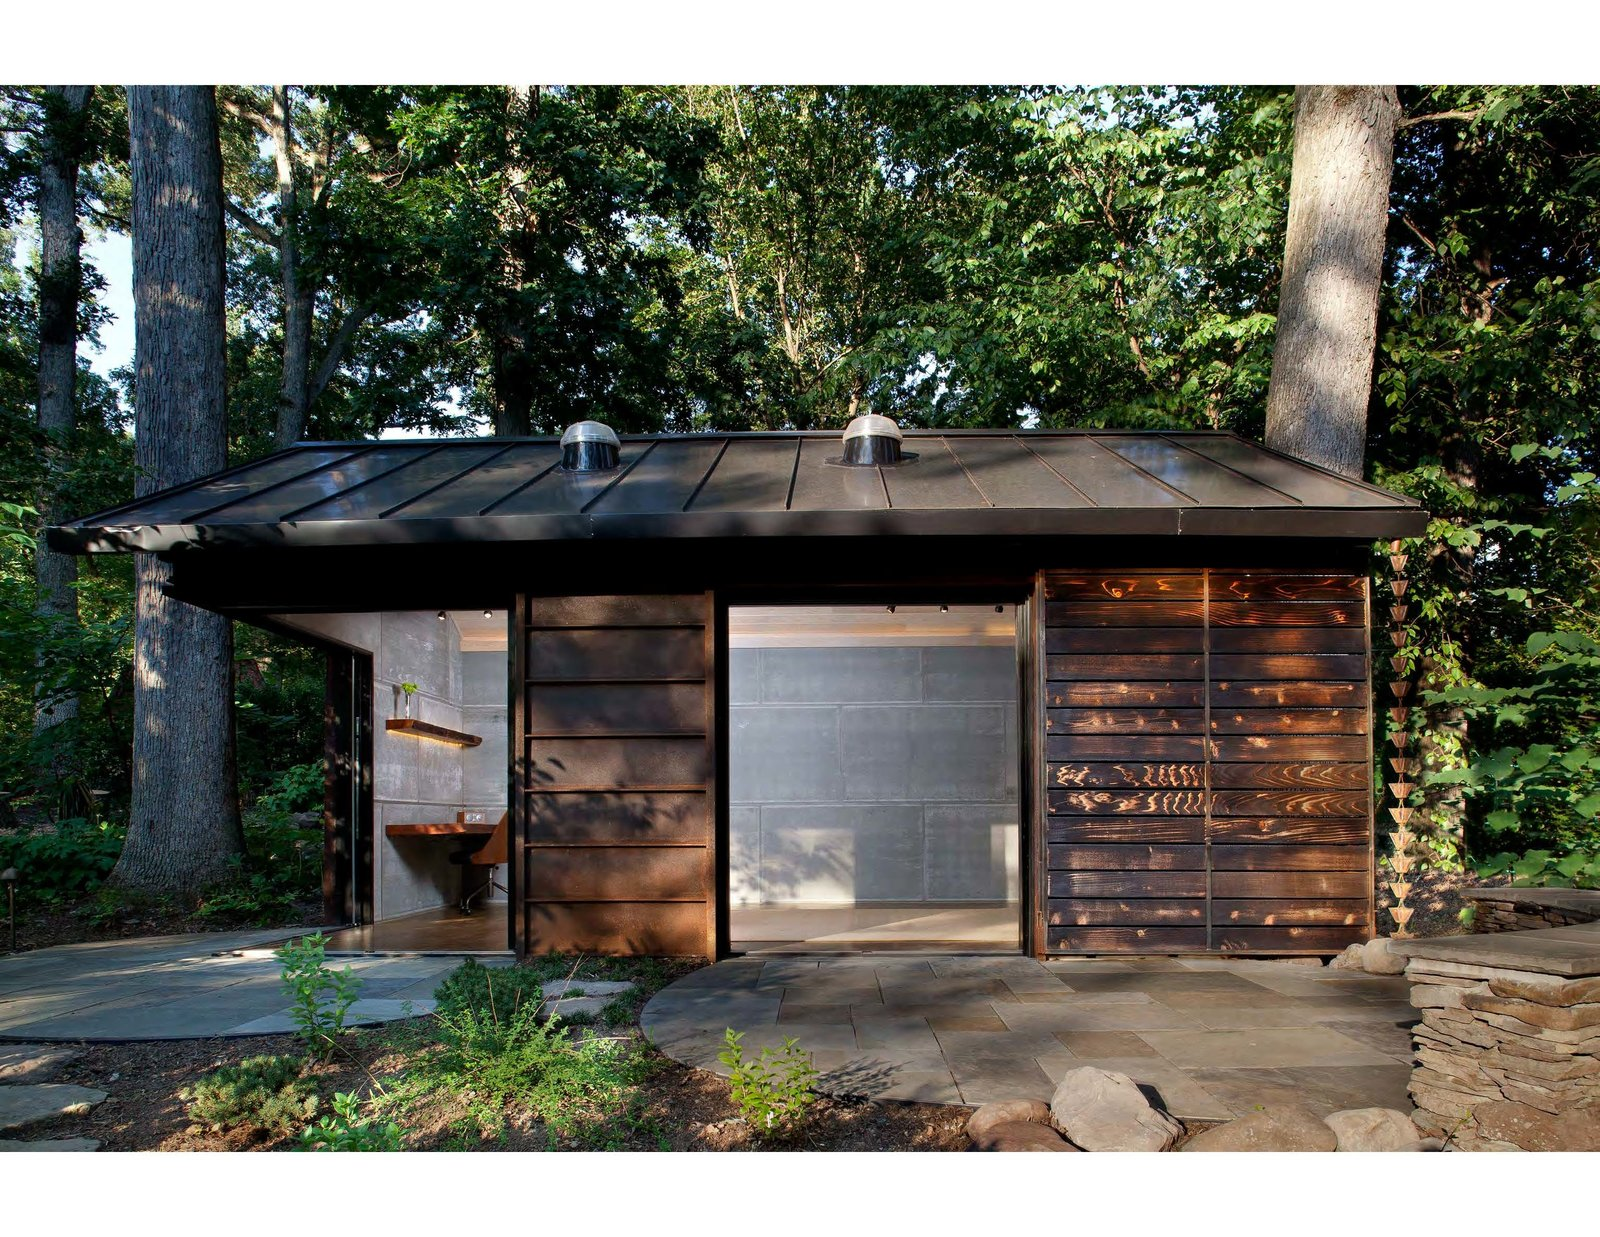 Exterior, Metal Siding Material, Cabin Building Type, Gable RoofLine, and Metal Roof Material GreenSpur and McAllister Architects imagined a cabin sided with Cor-Ten steel, glass, and shou sugi ban–treated cedar for a wooded property outside of Washington, DC.  Photos from Welcome to Your New Office, the Creative Cabin